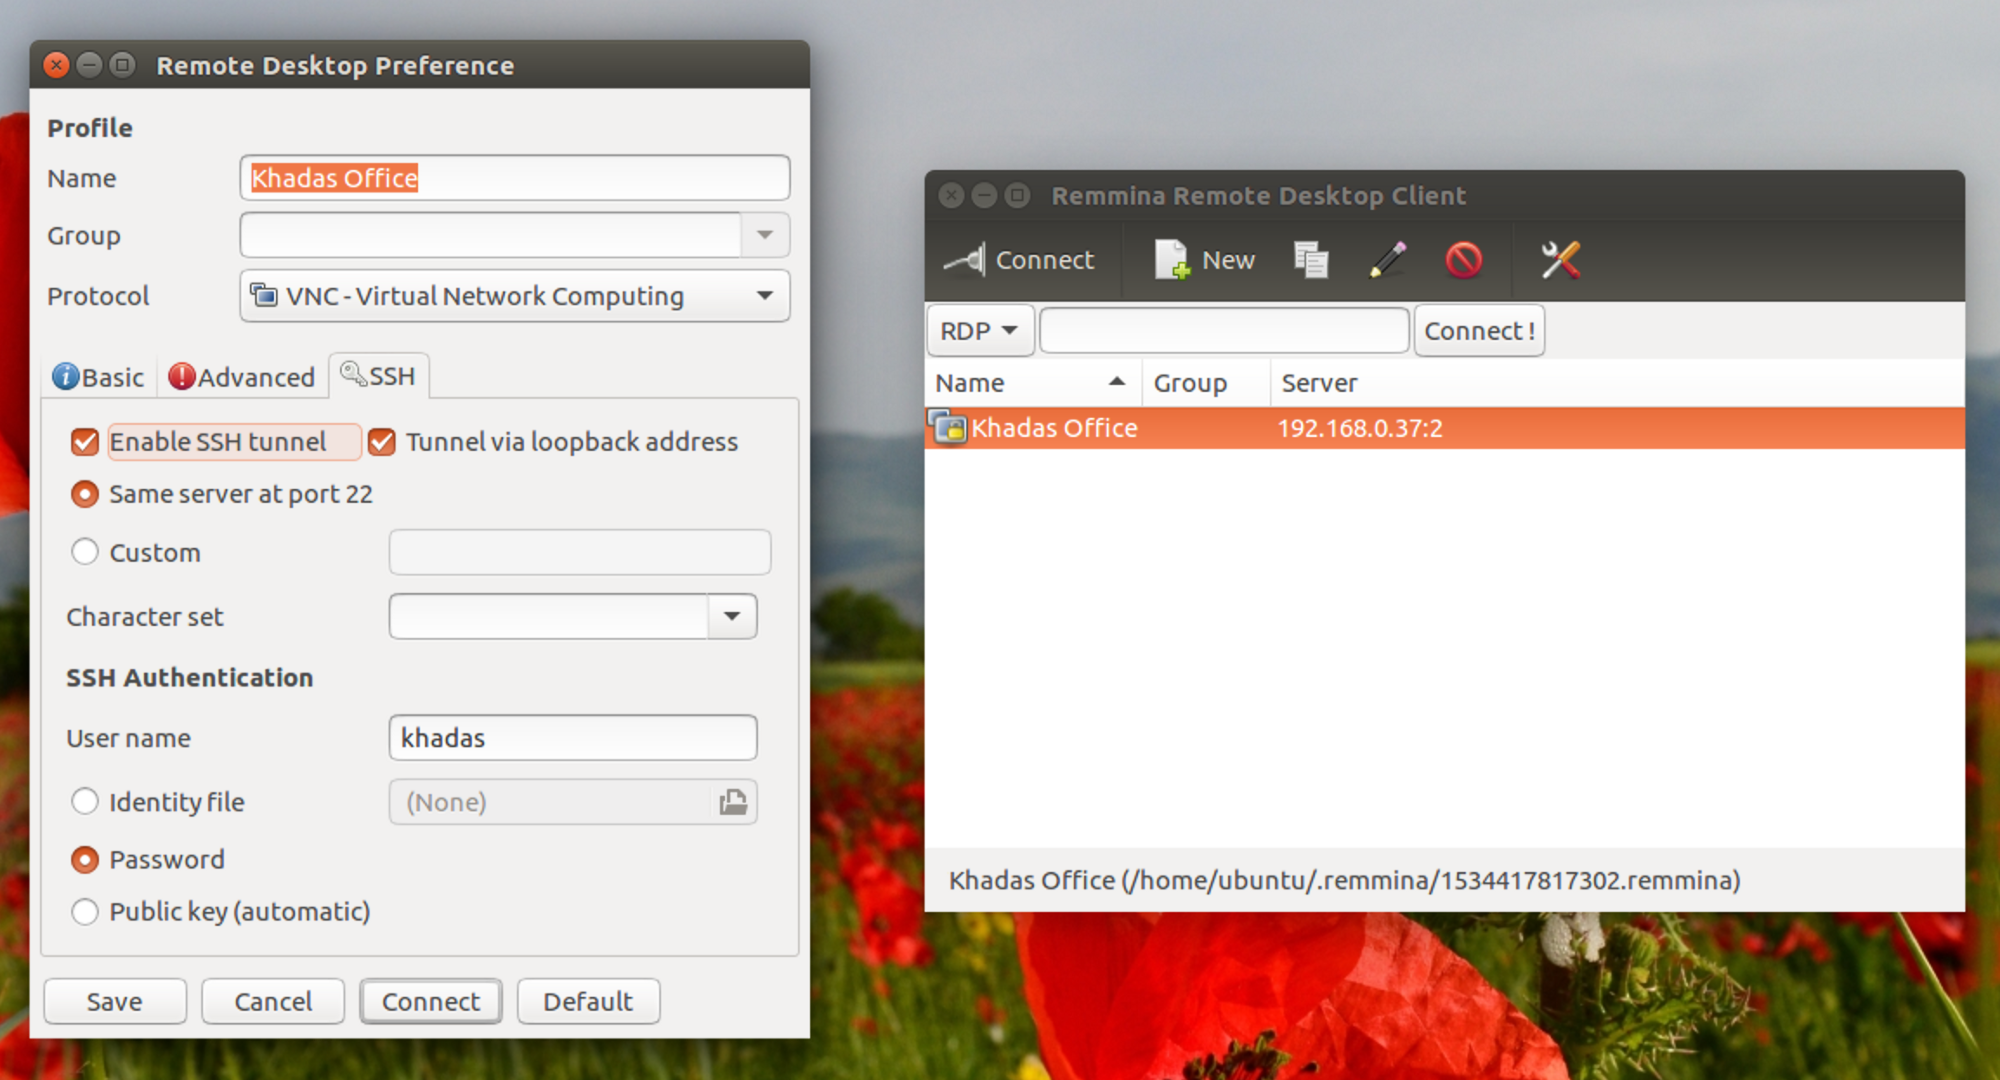 On Ubuntu 16.04, you can use the Remmina Remote Desktop Client, it has built-in SSH encryption.